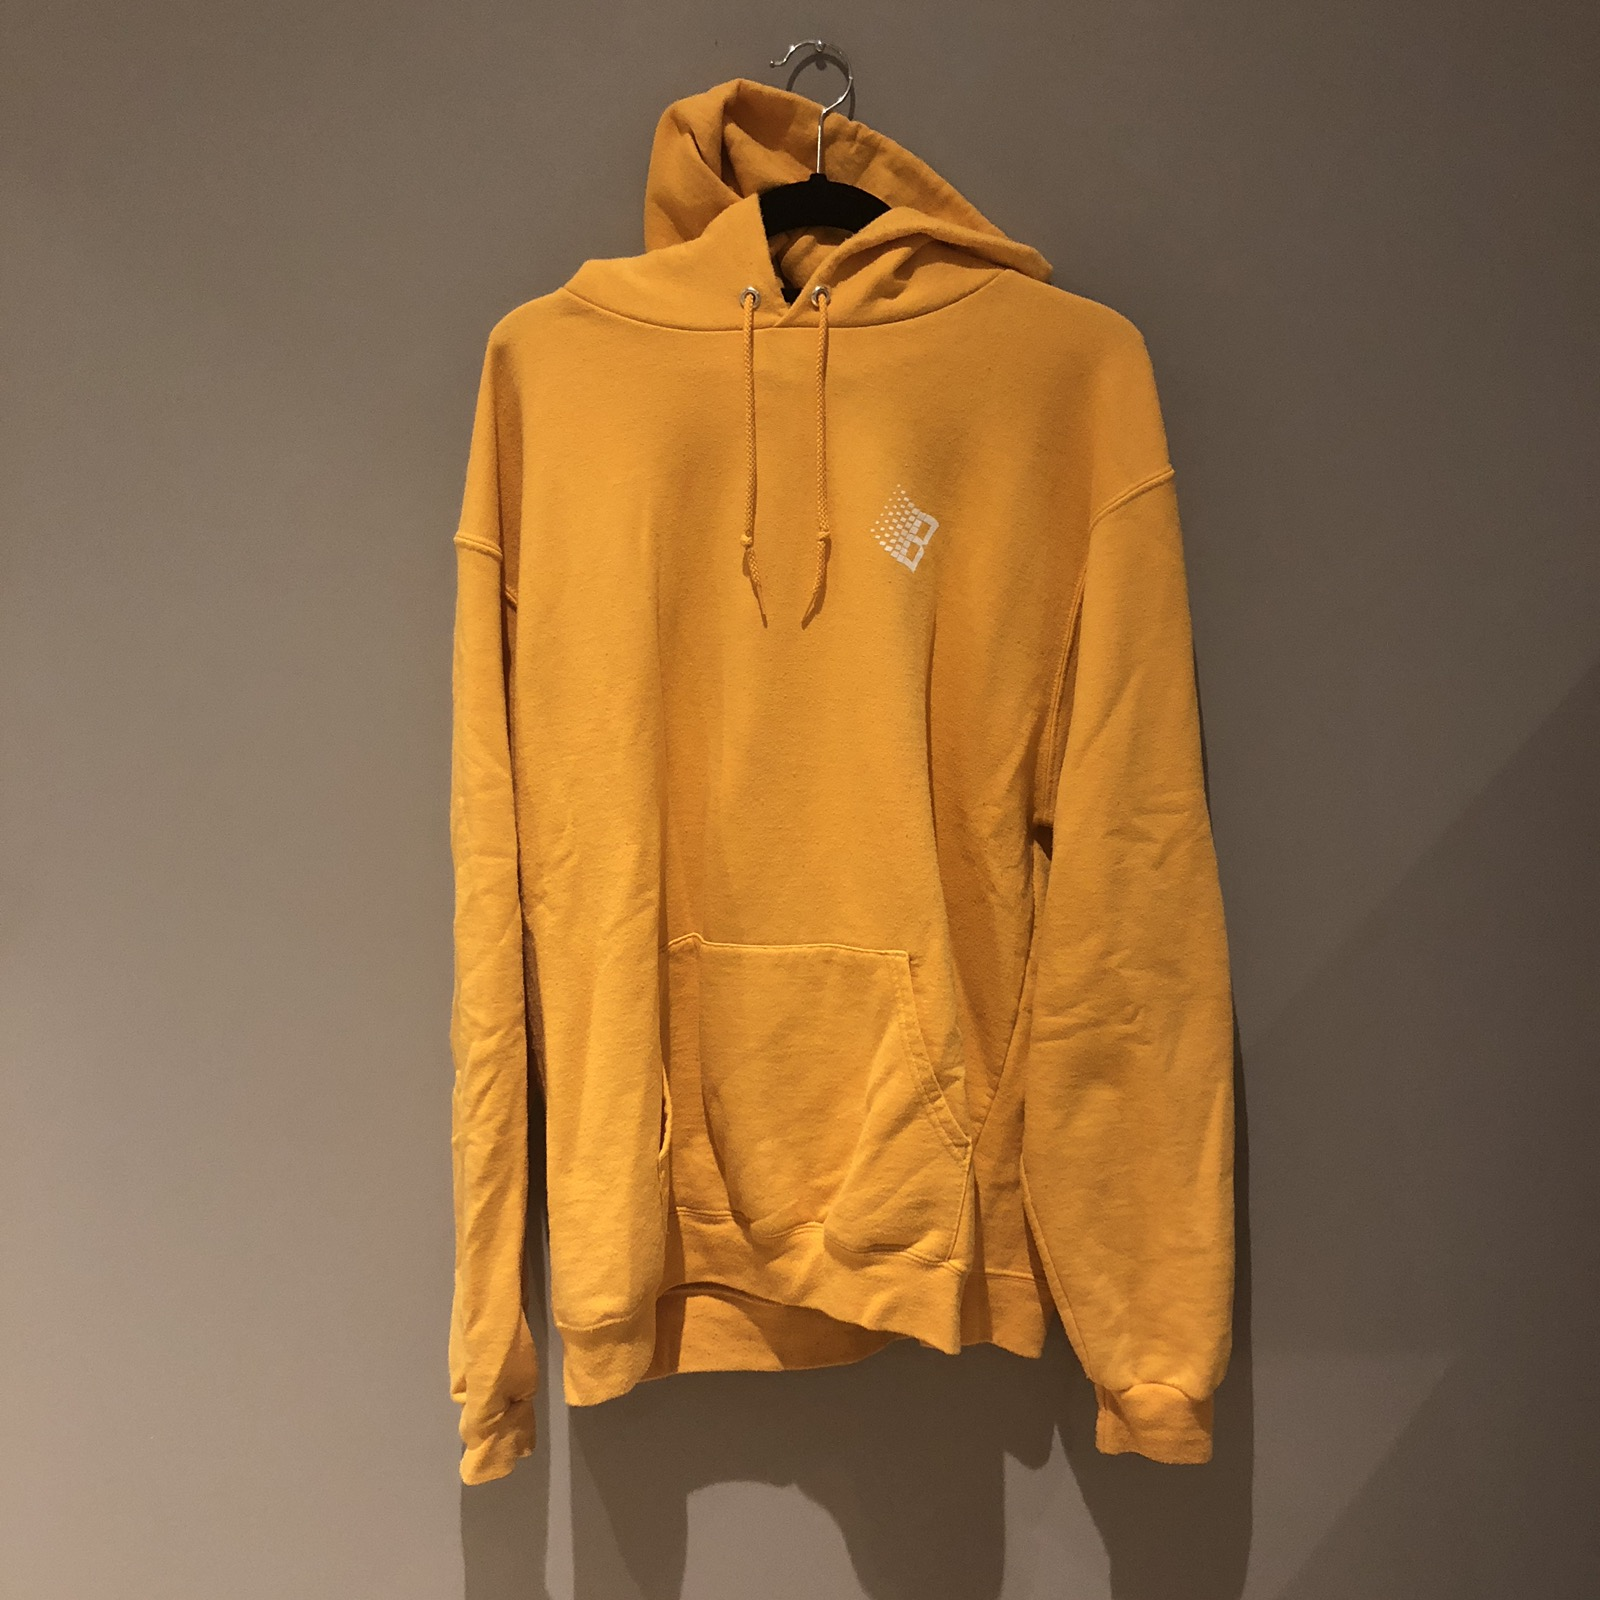 H&M MustardYellow Hoodie, Men's Fashion, Clothes, Outerwear